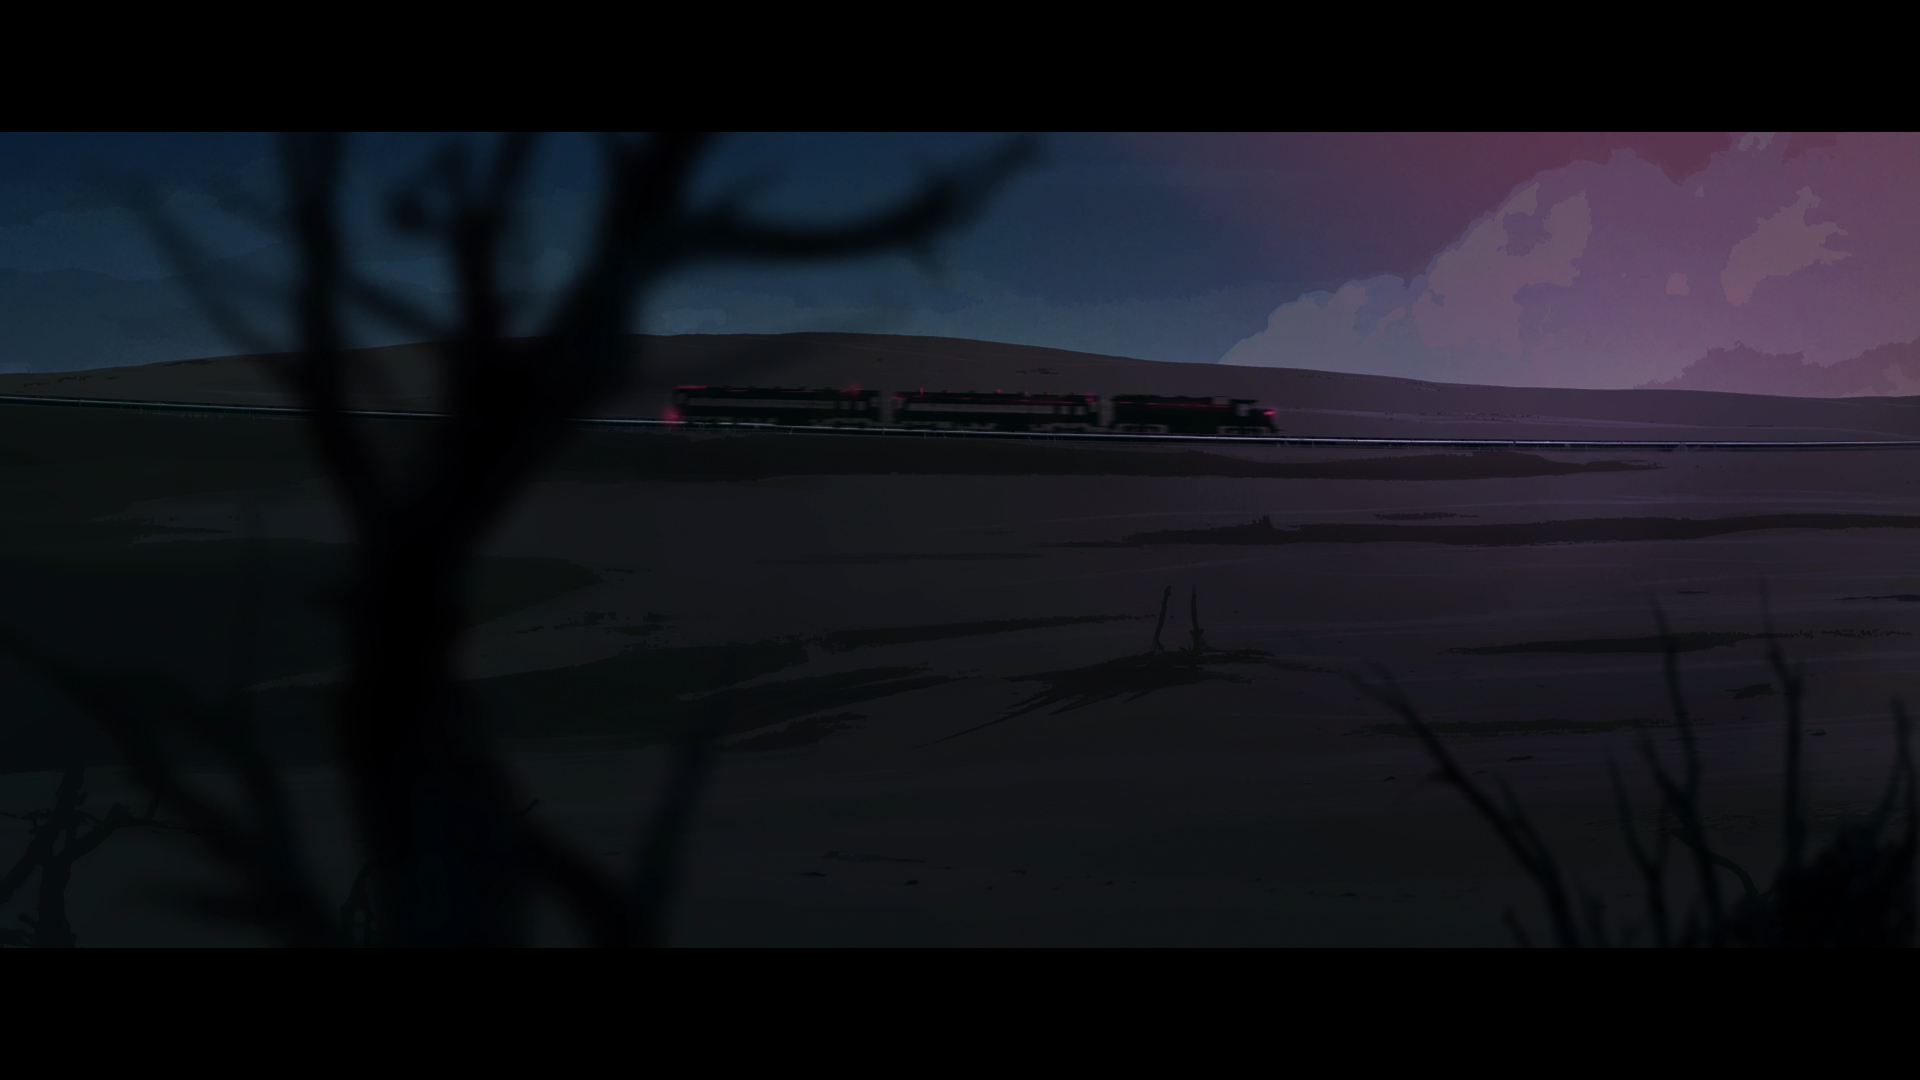 Train going through the mountains in a red night sky